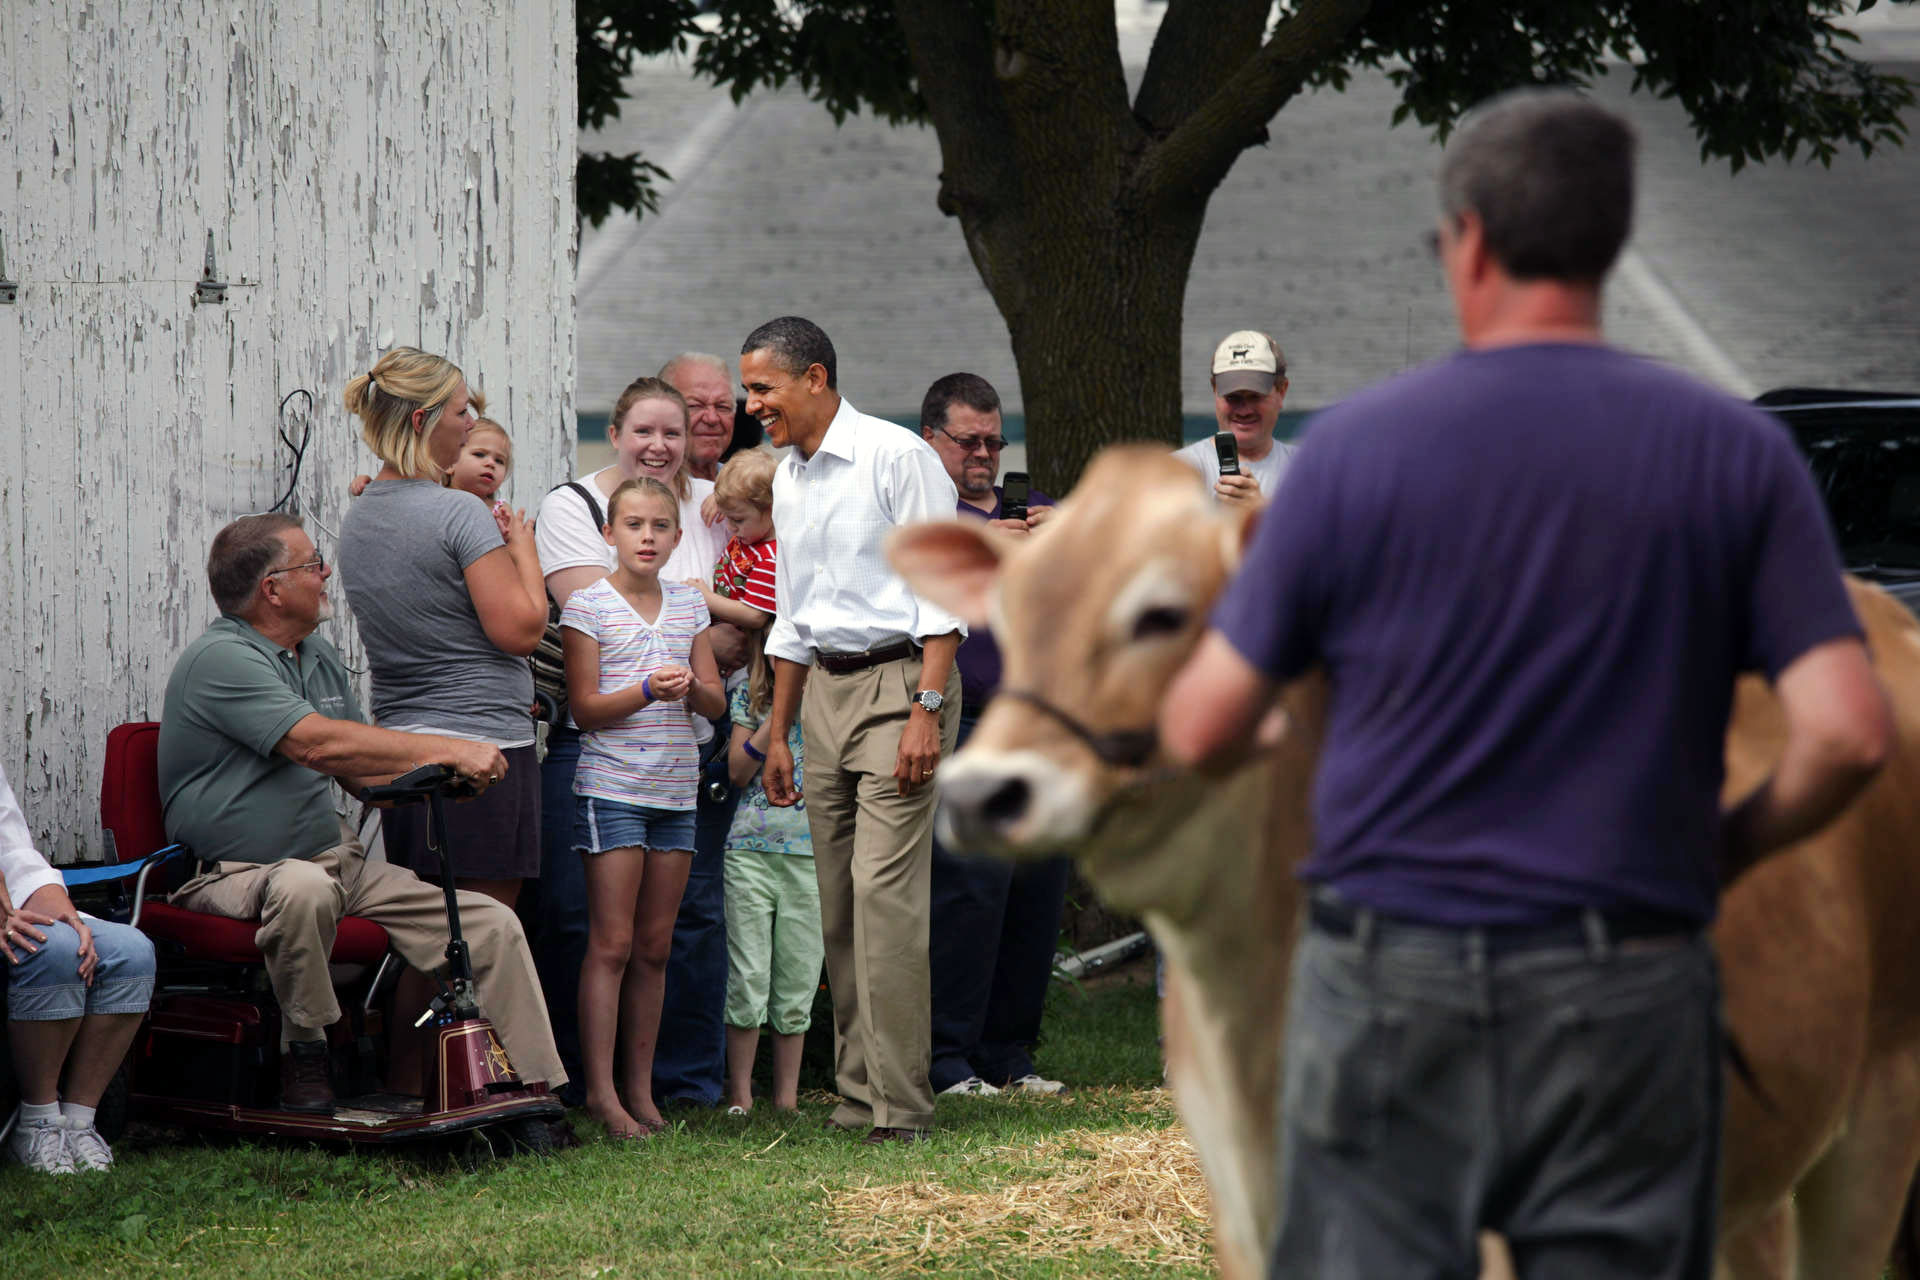 President Barack Obama stops by the Whiteside County Fair in Morrison, Ill.